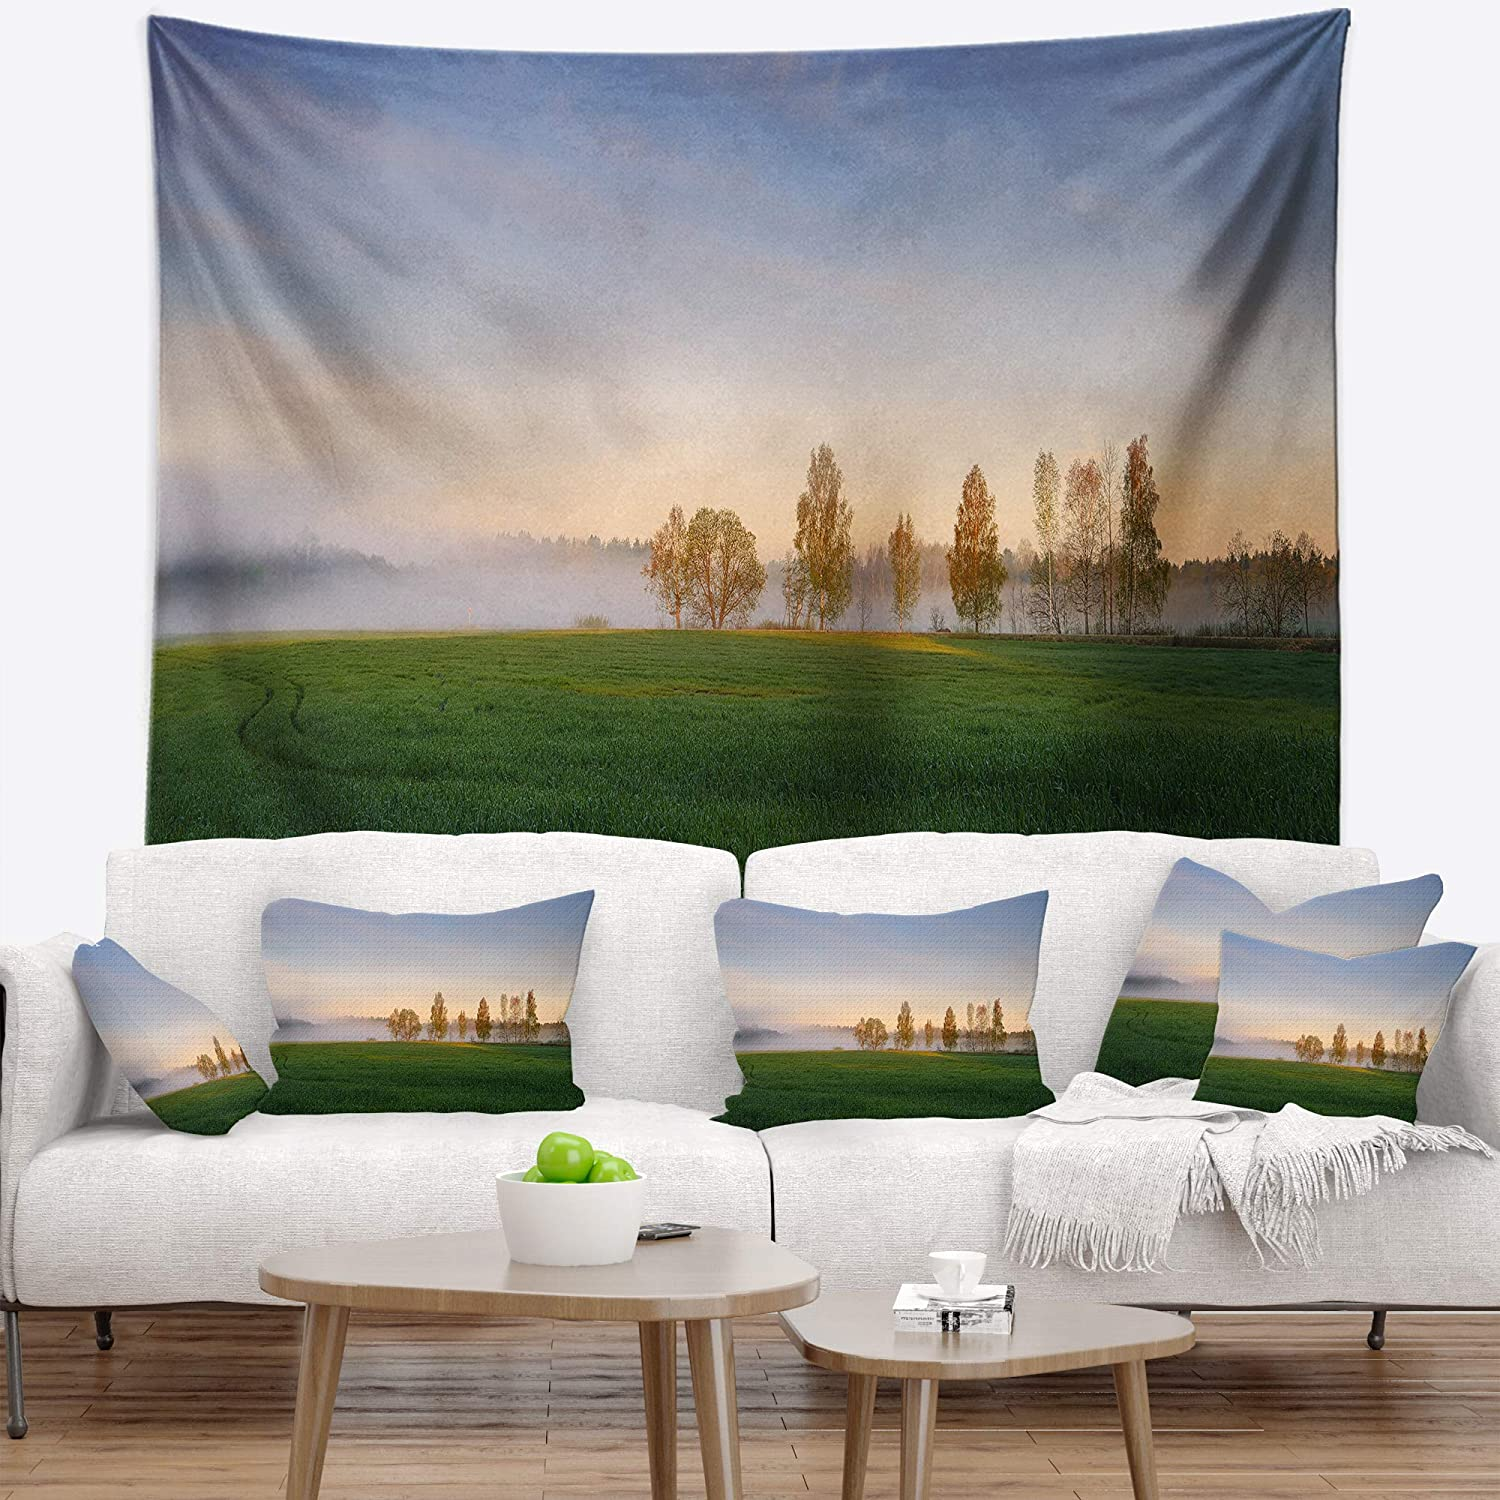 Designart TAP15234-39-32  Foggy Early Morning Panorama Landscape Blanket D/écor Art for Home and Office Wall Tapestry Medium 39 x 32 Created on Lightweight Polyester Fabric